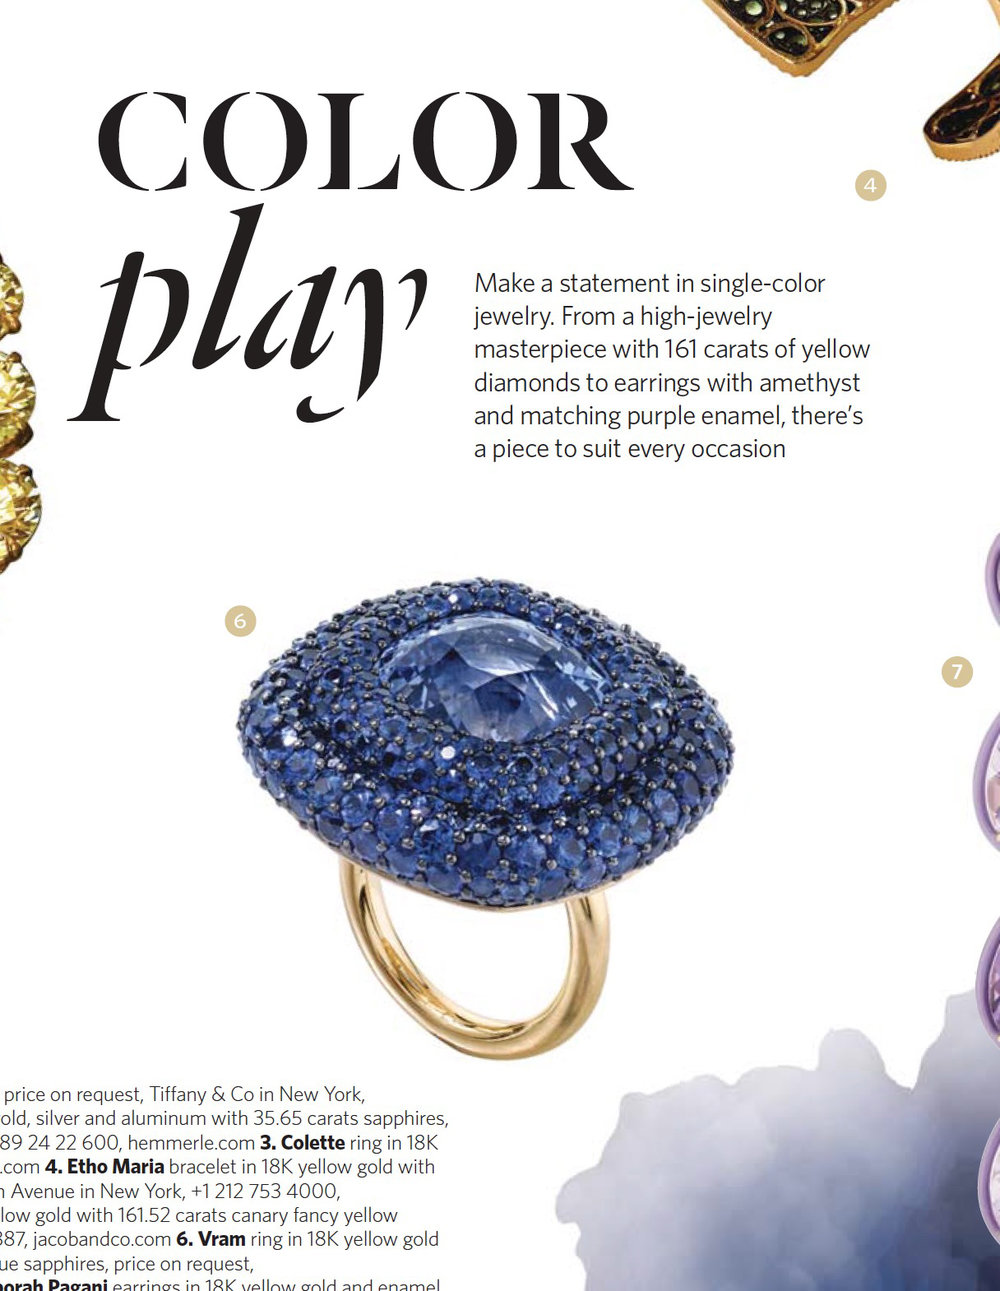 VRAM JEWELRY SAPPHIRE RING ELITE TRAVELER MAGAZINE